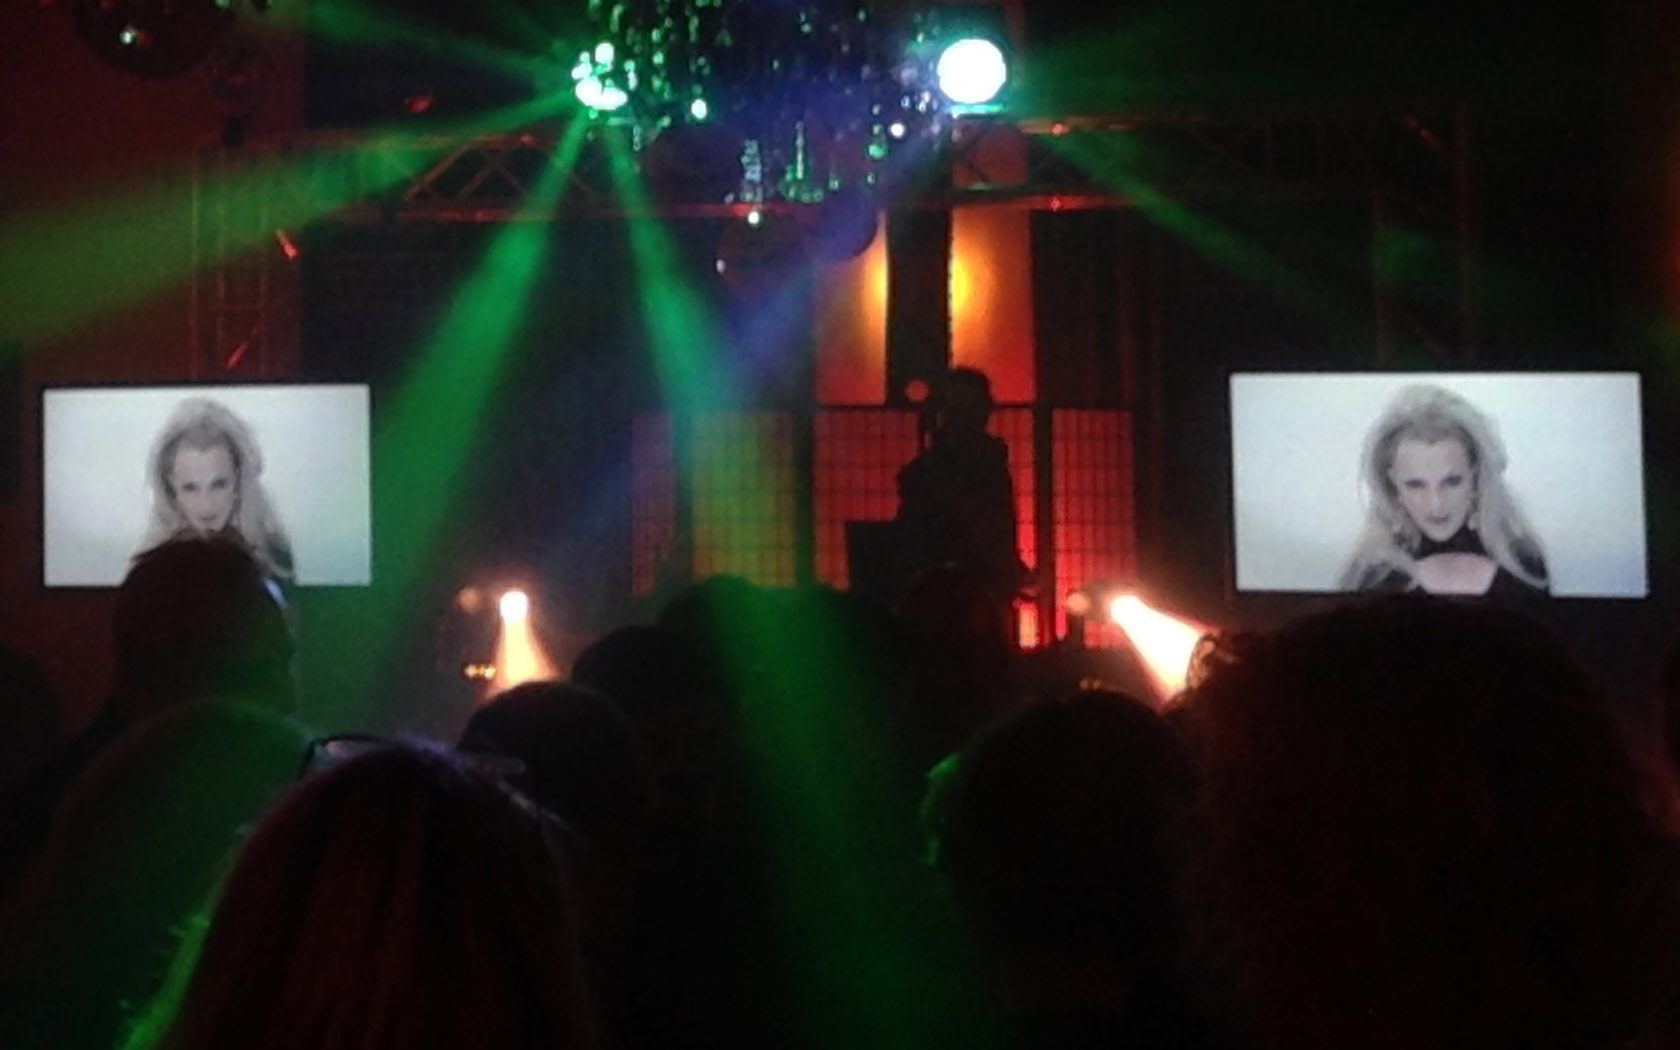 DJ Franklin mit Videoshow in Hattingen